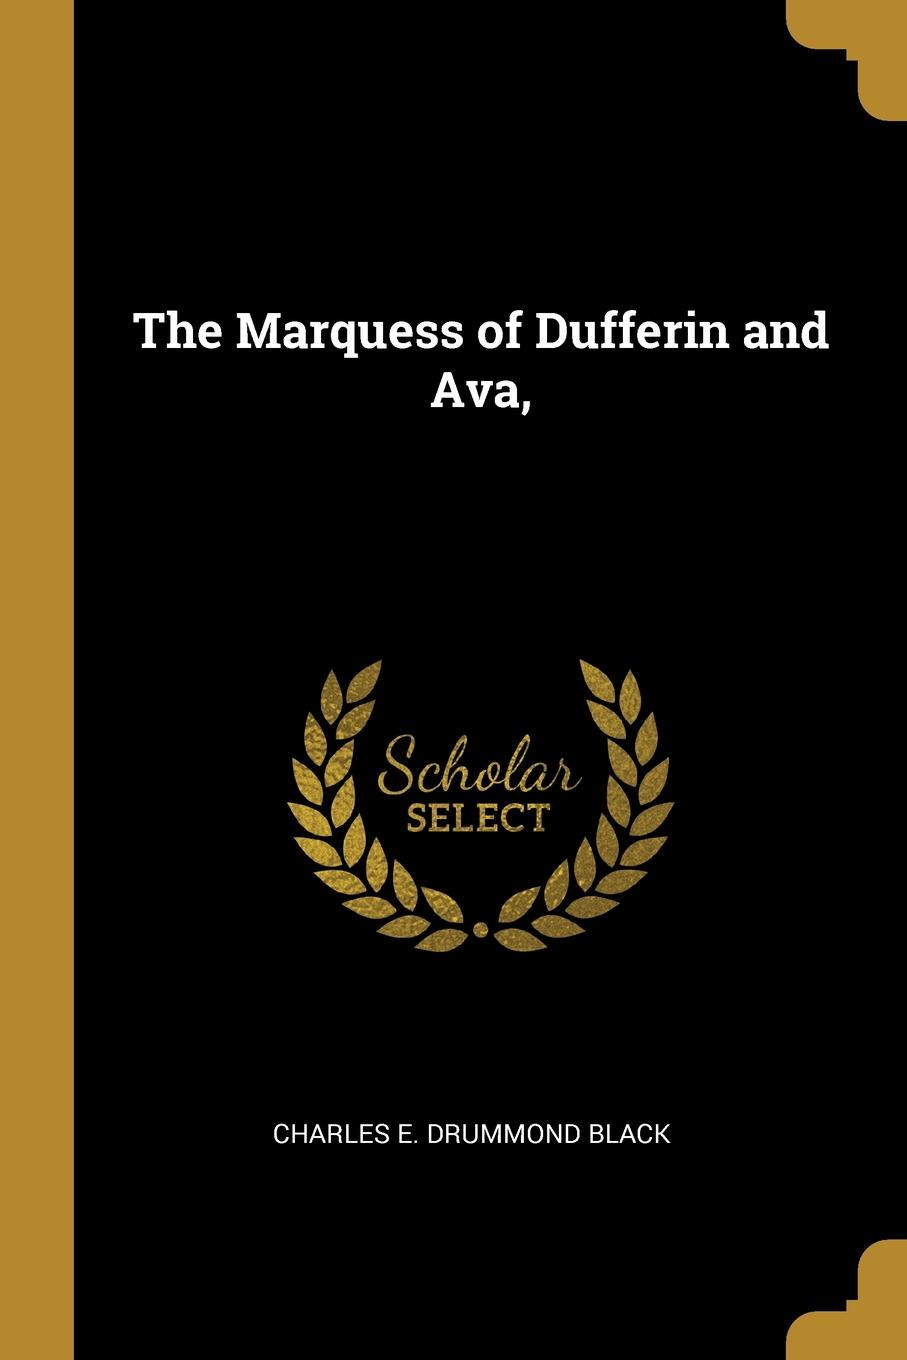 The Marquess of Dufferin and Ava,